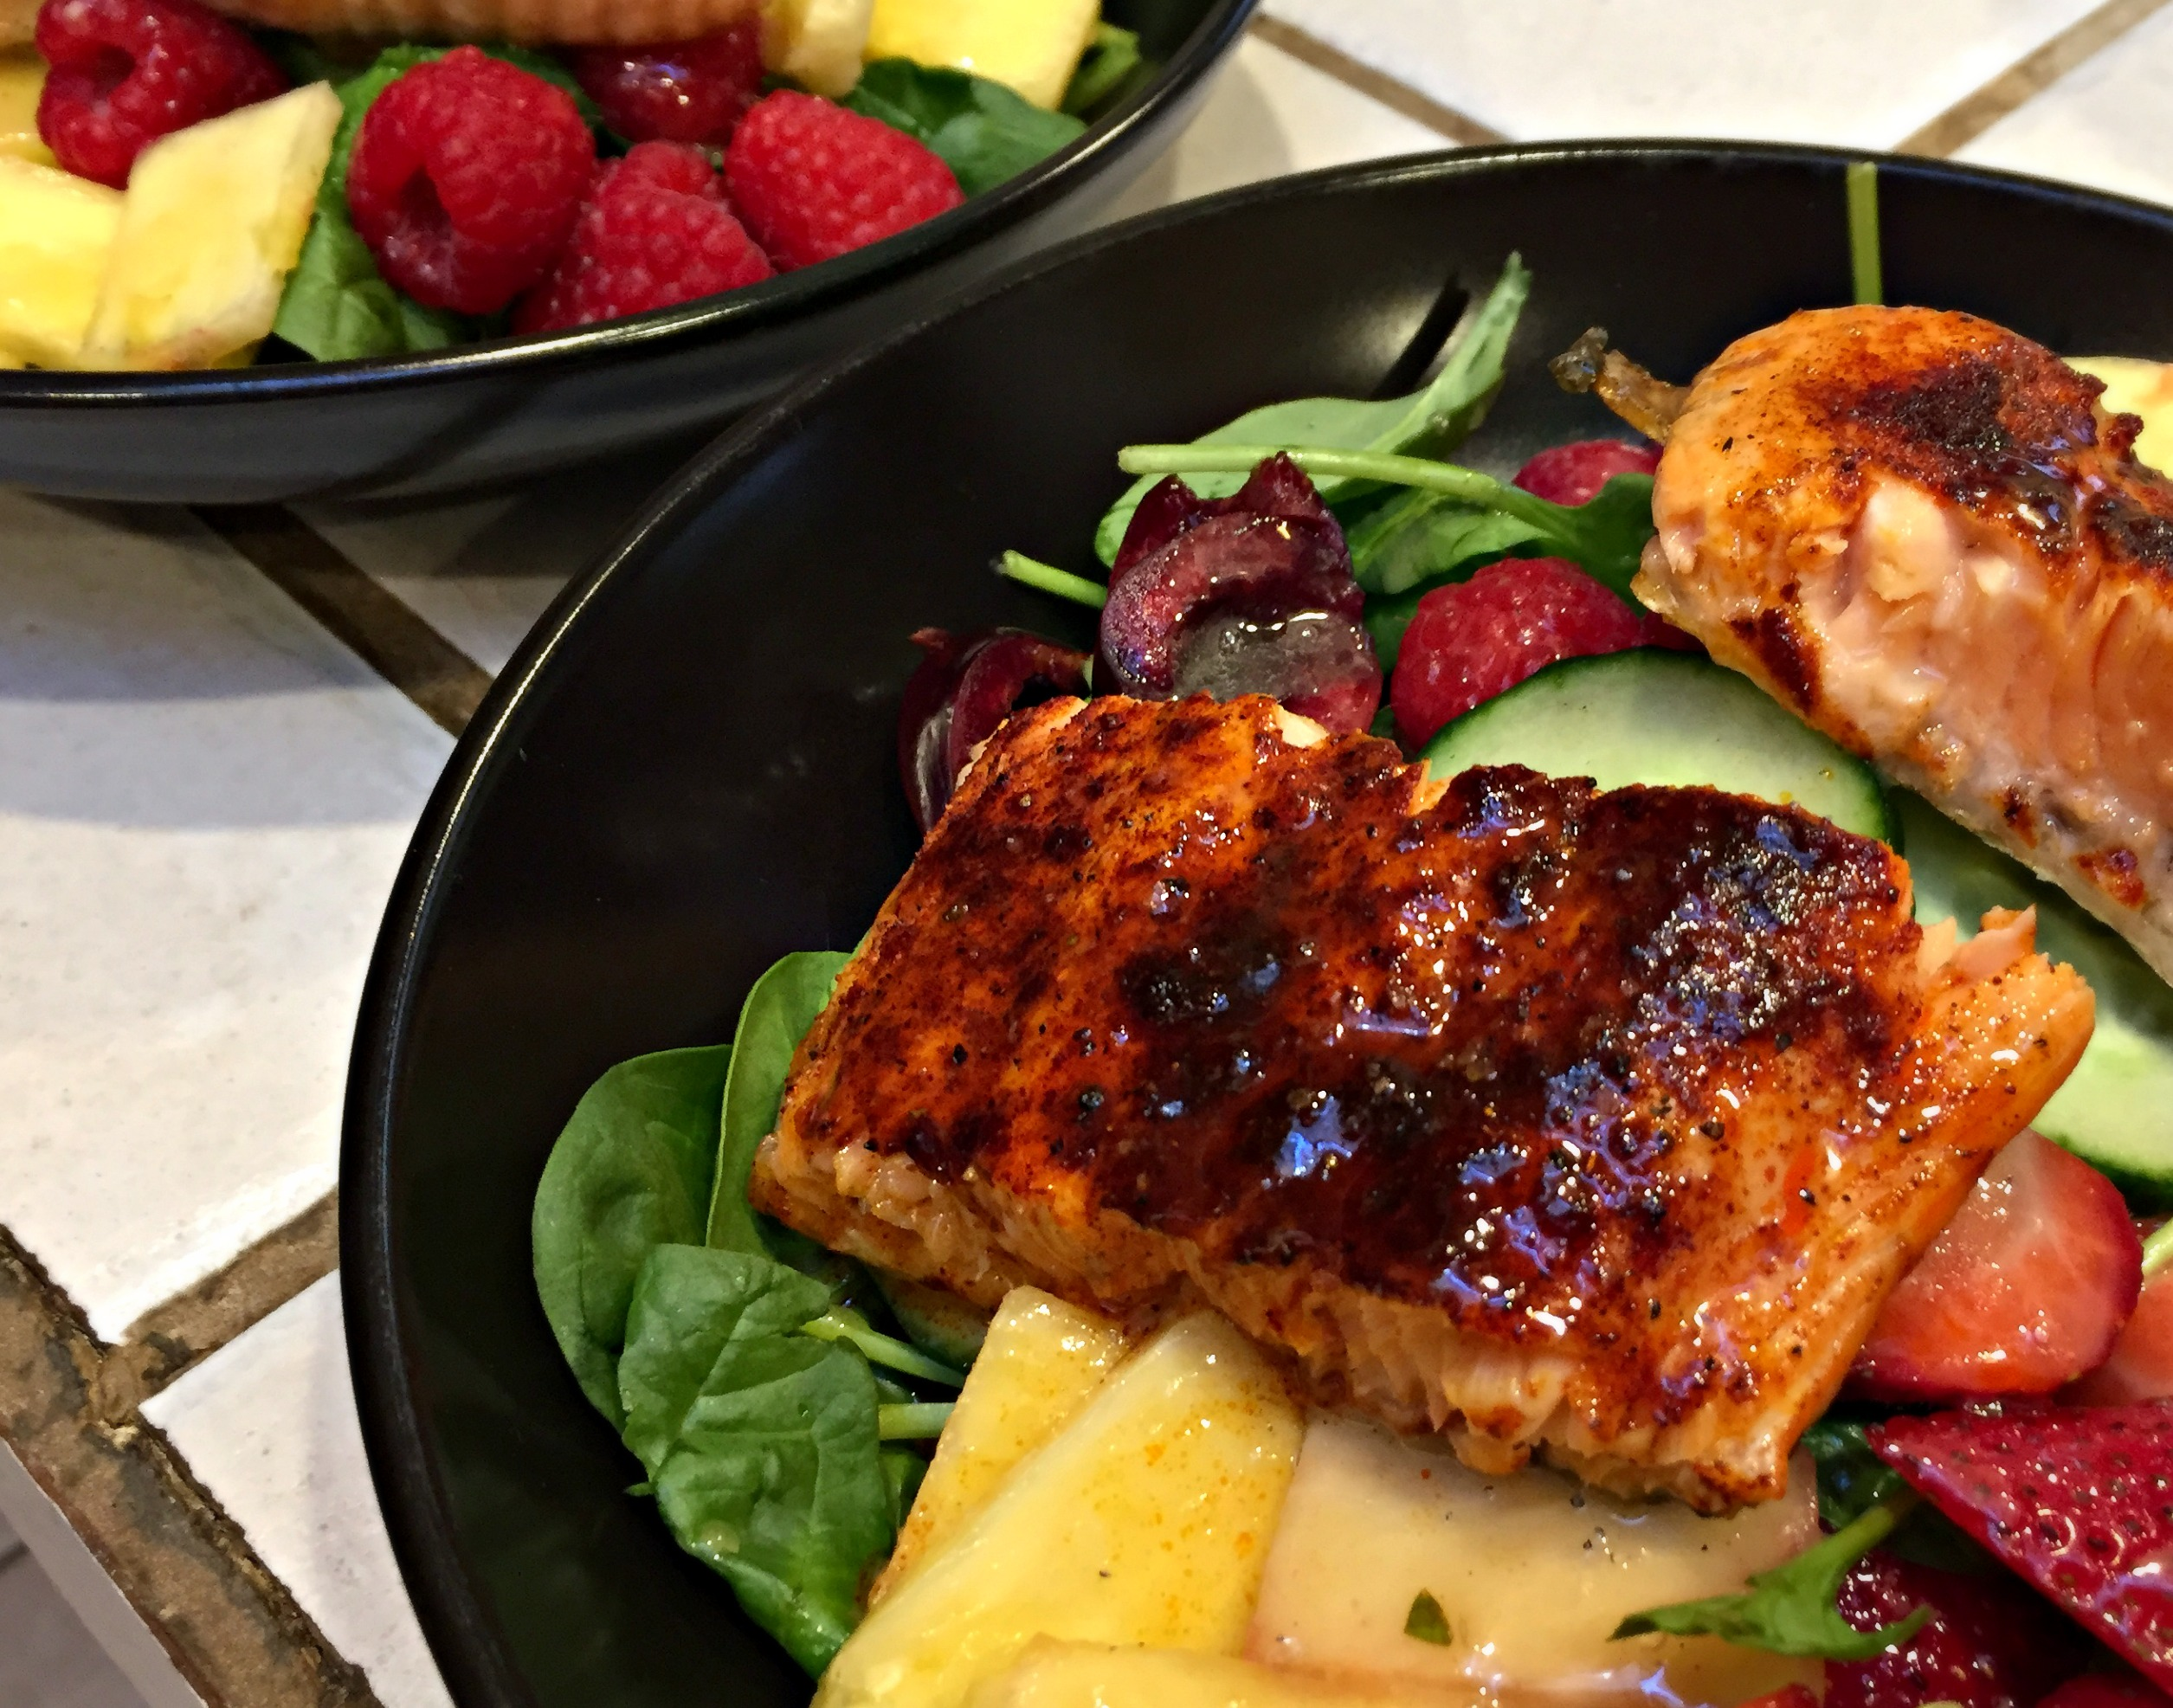 Summer Salmon and Berry Salad with Cardamom-Honey-Lime Dressing